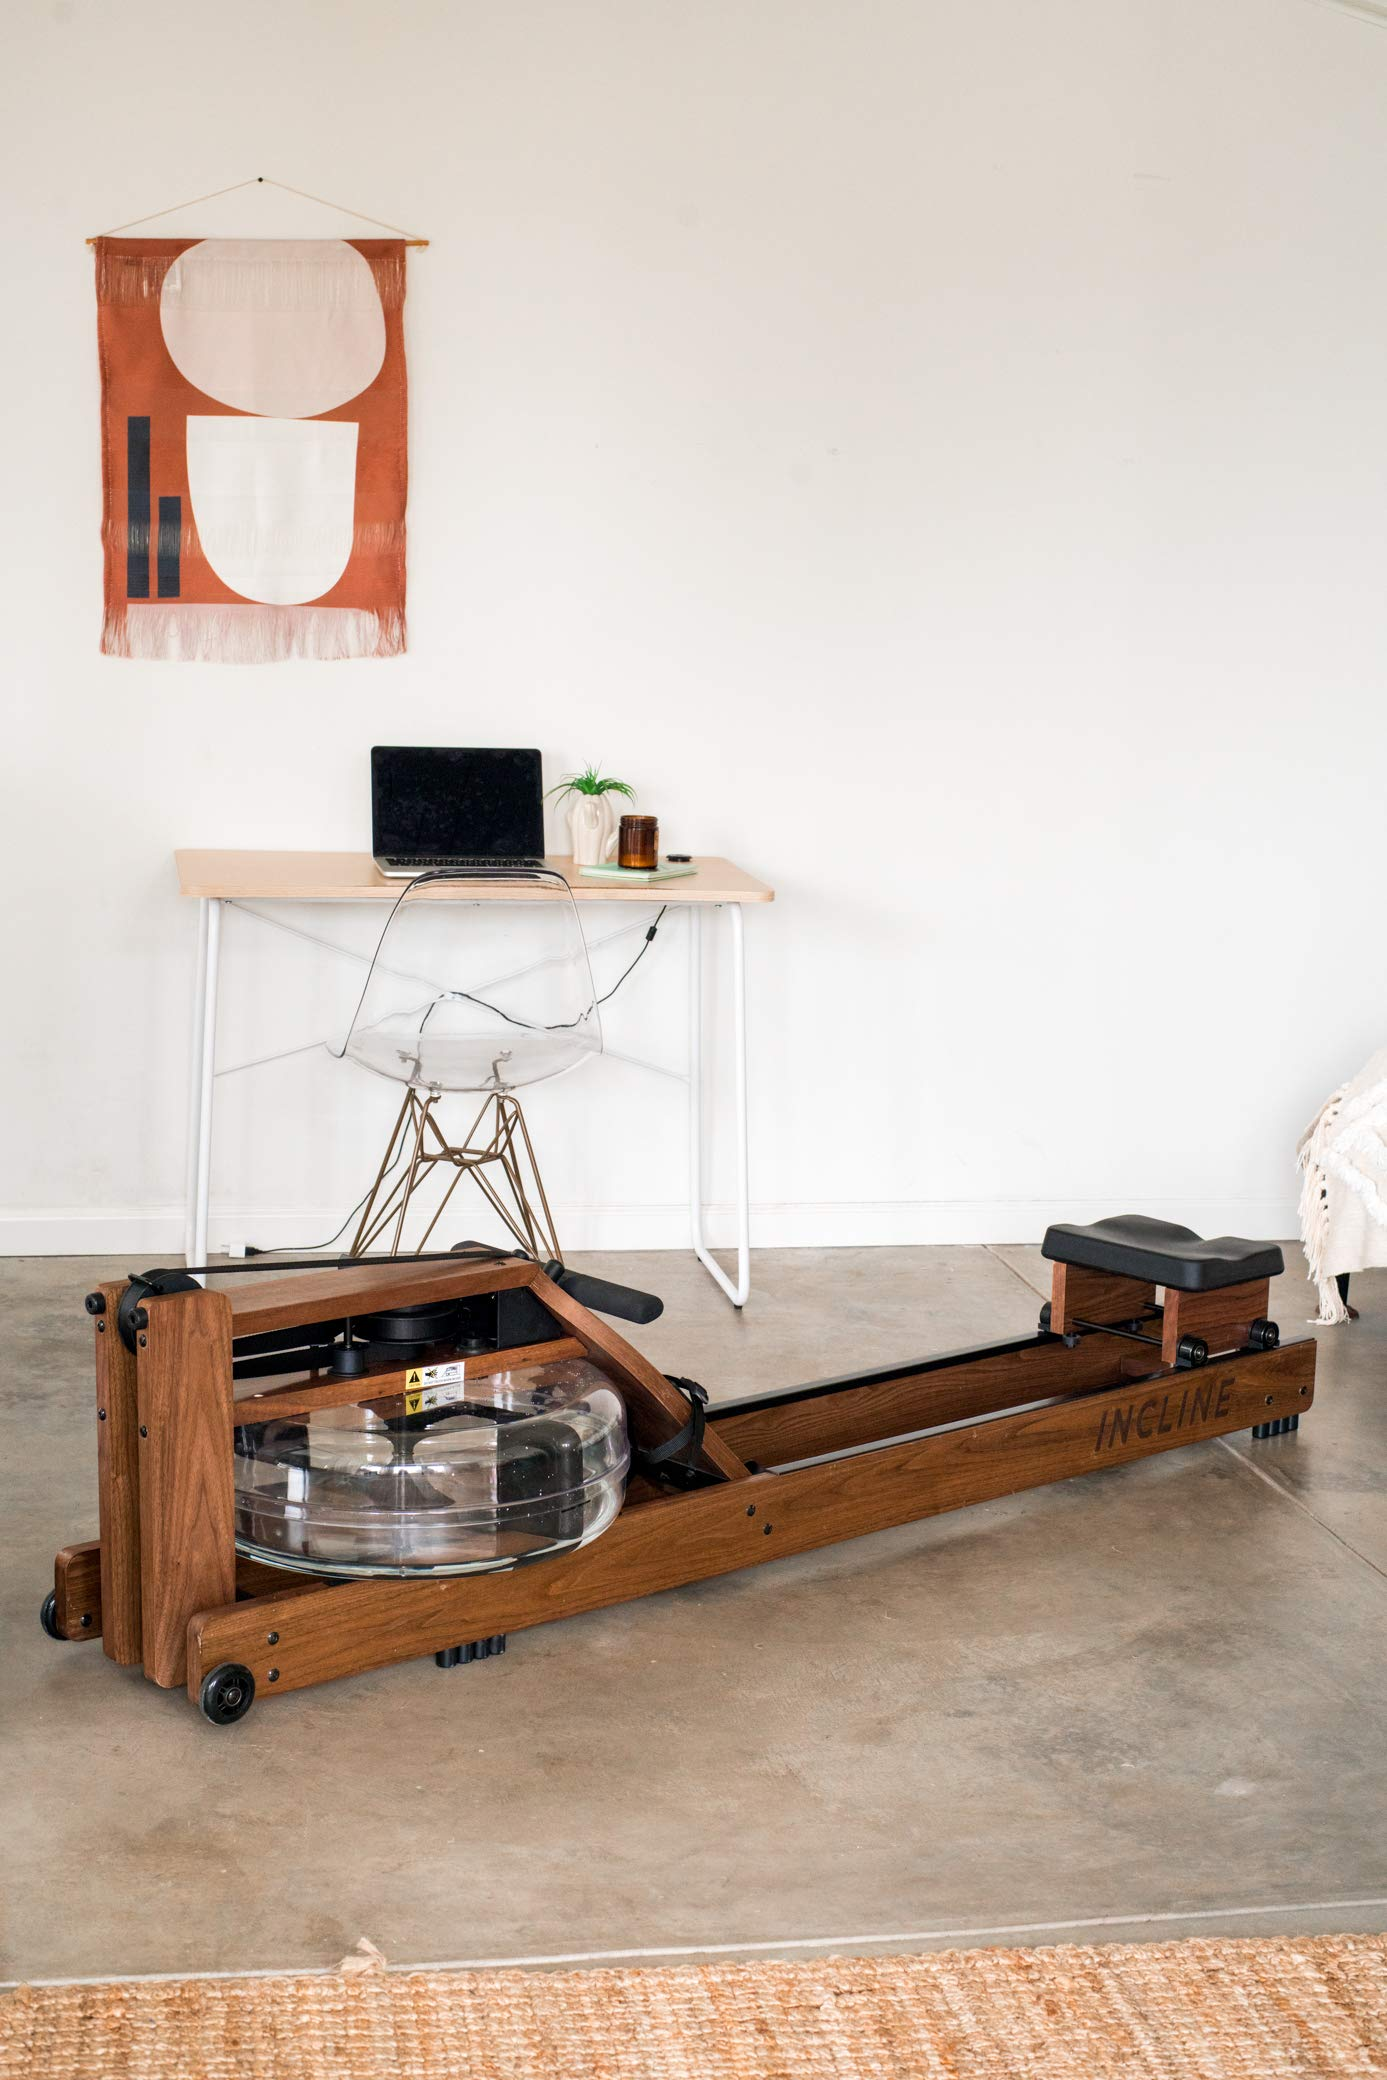 Incline Fit Wood Water Rowing Machine with Monitor, Walnut by Incline Fit (Image #7)